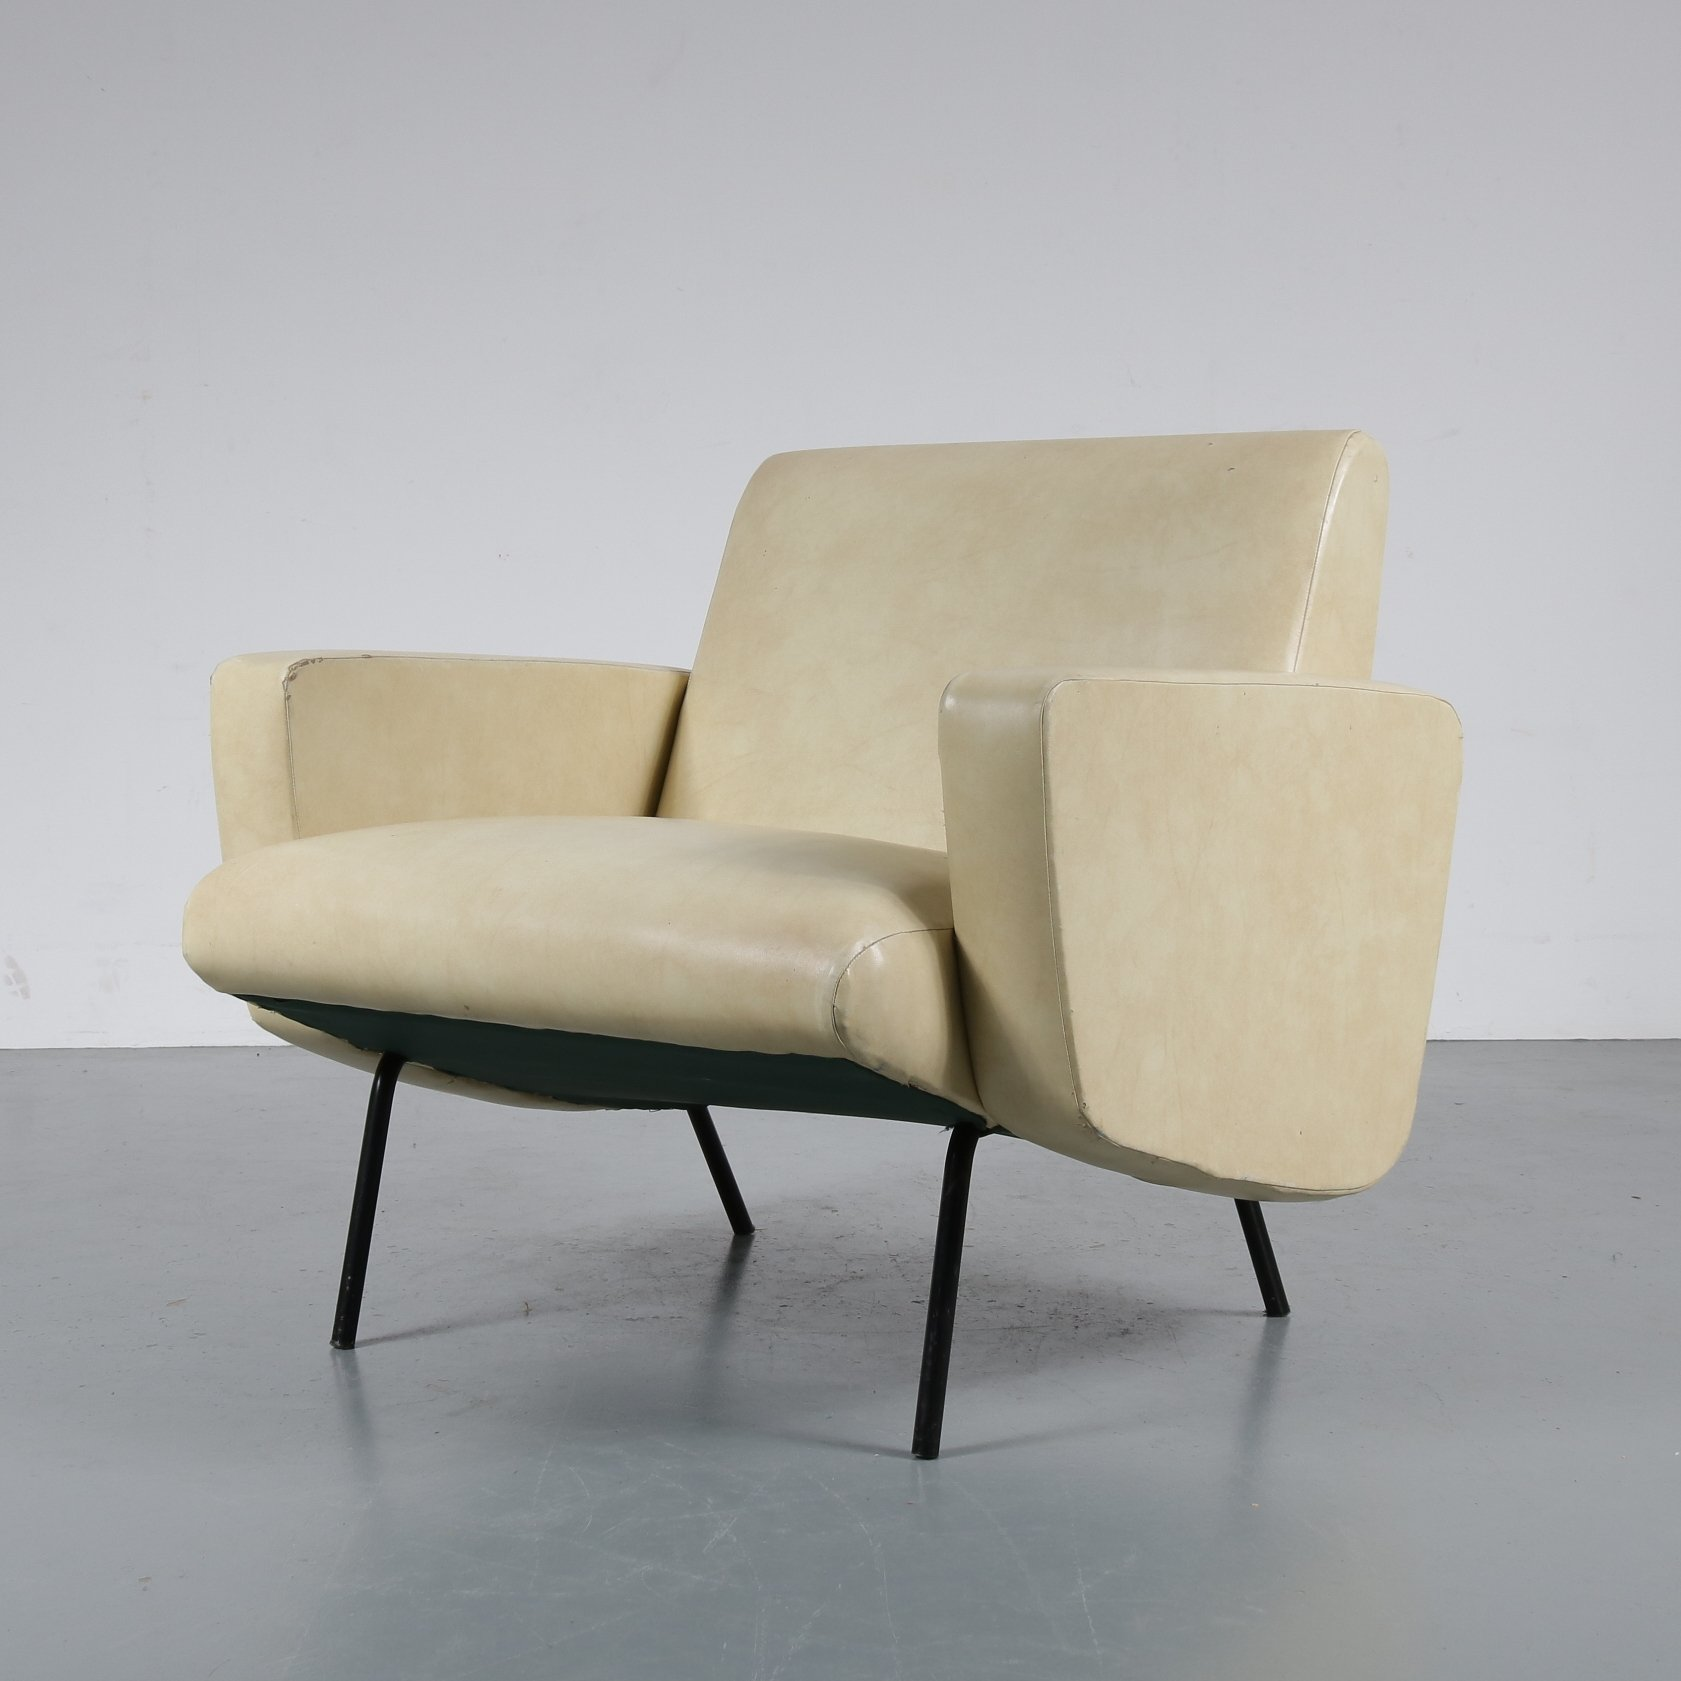 Merveilleux 1950s French Lounge Chair By Joseph André Motte